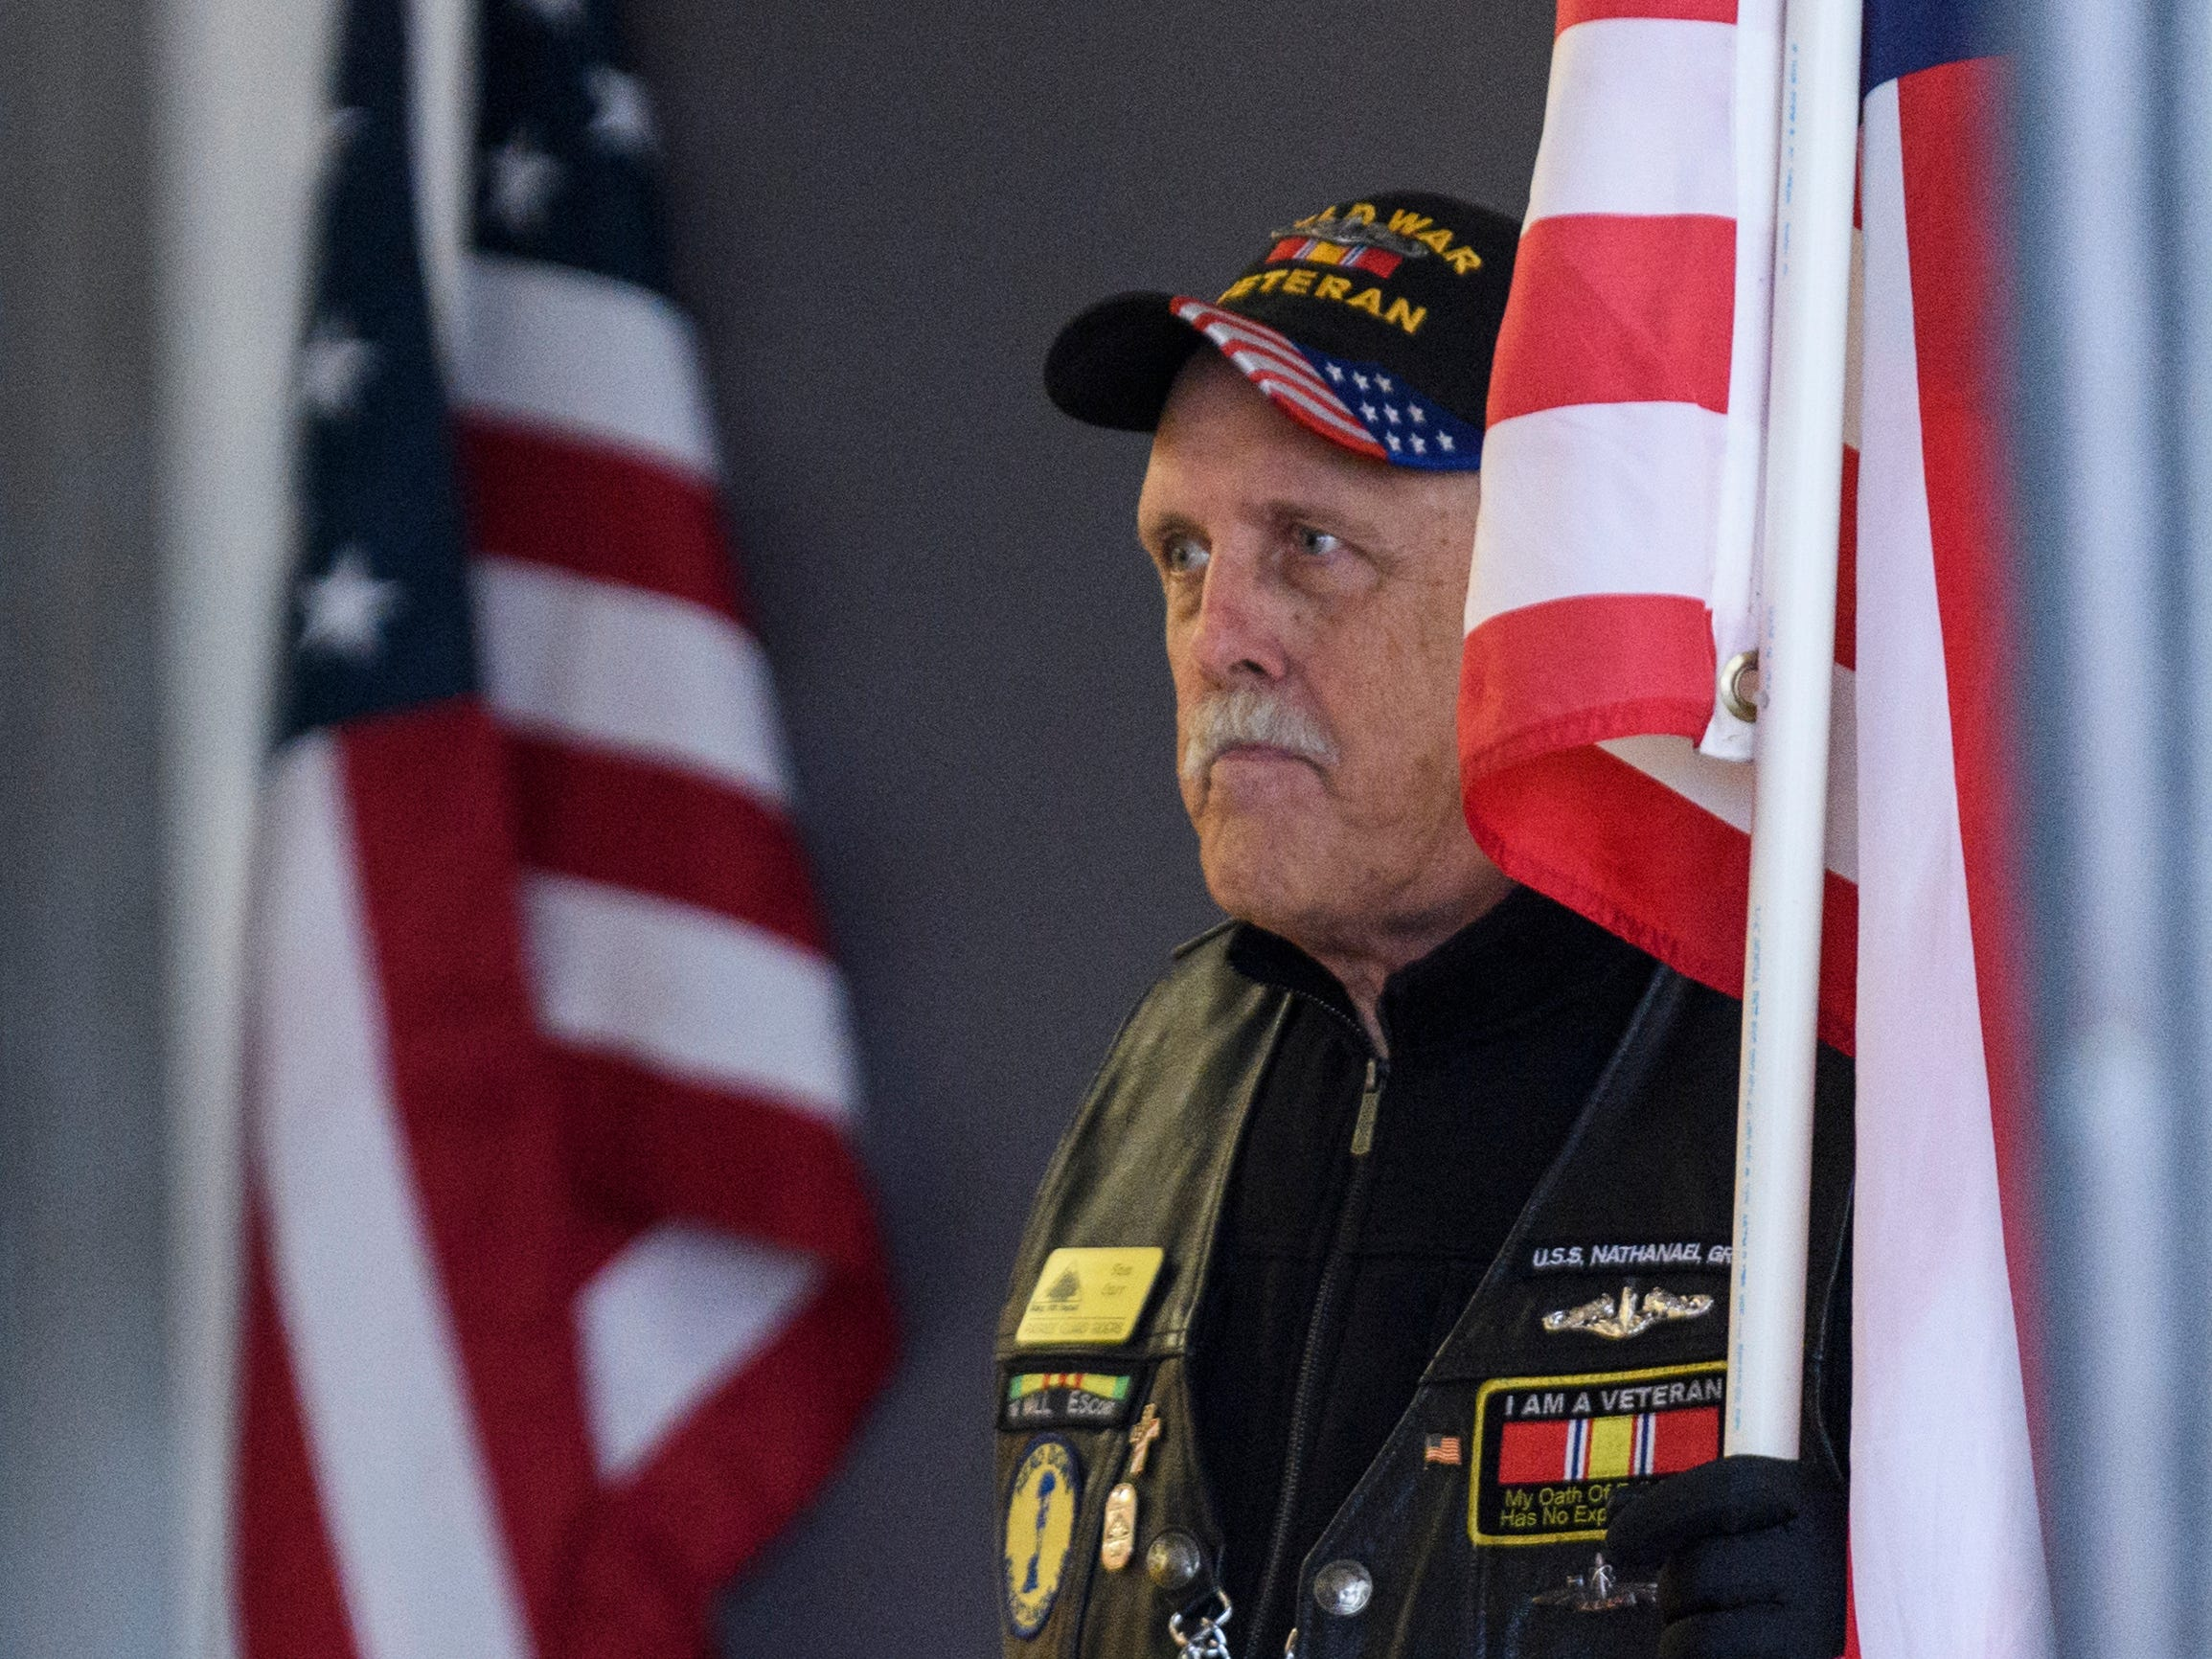 "Tom Carr of the Southwest Indiana Patriot Guard Riders holds an American Flag in the entryway of Evansville's Christian Fellowship Church during a visitation held for Army Sgt. Drew Watters, Tuesday afternoon, Nov. 13, 2018. ""Honor and respect, that's our motto,"" Carr said of the volunteer organization. The group, which includes military veterans and civilians, attend memorial services at the request of deceased soldiers' or veterans' family."